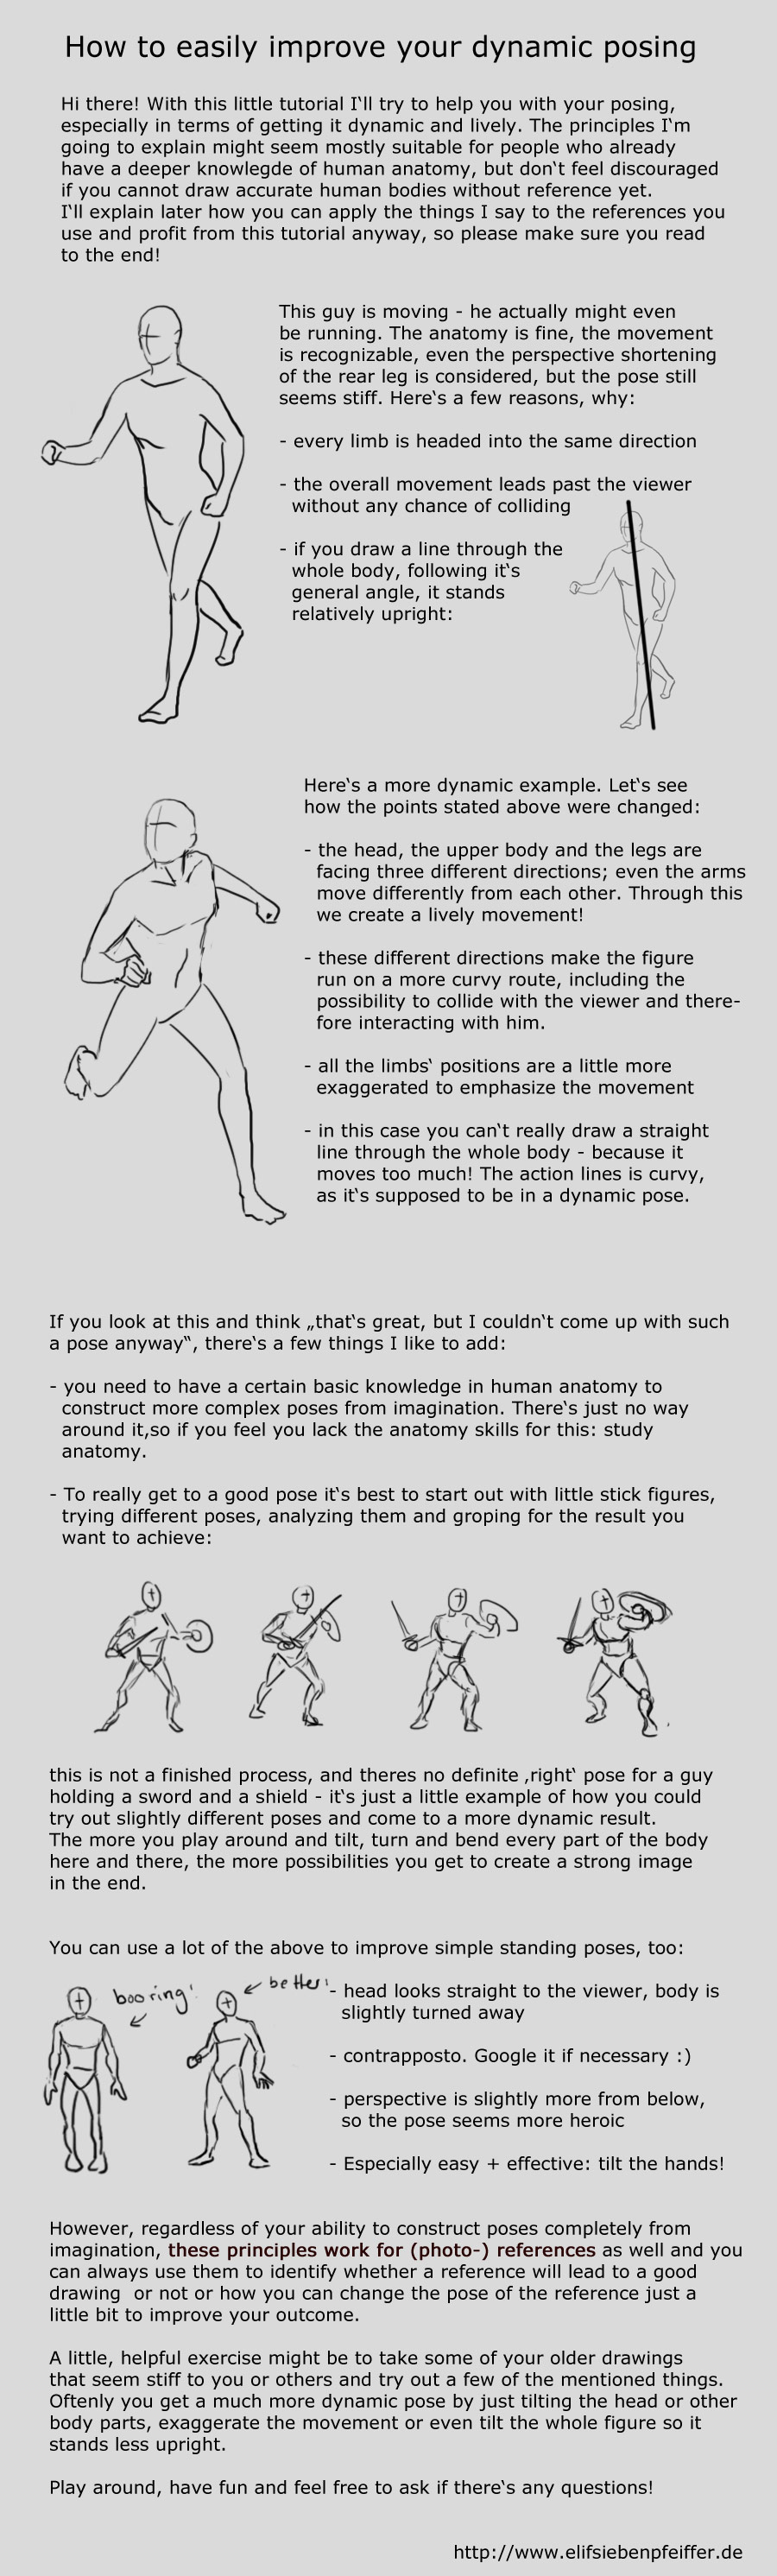 Tutorial: Dynamic Poses by ElifSiebenpfeiffer